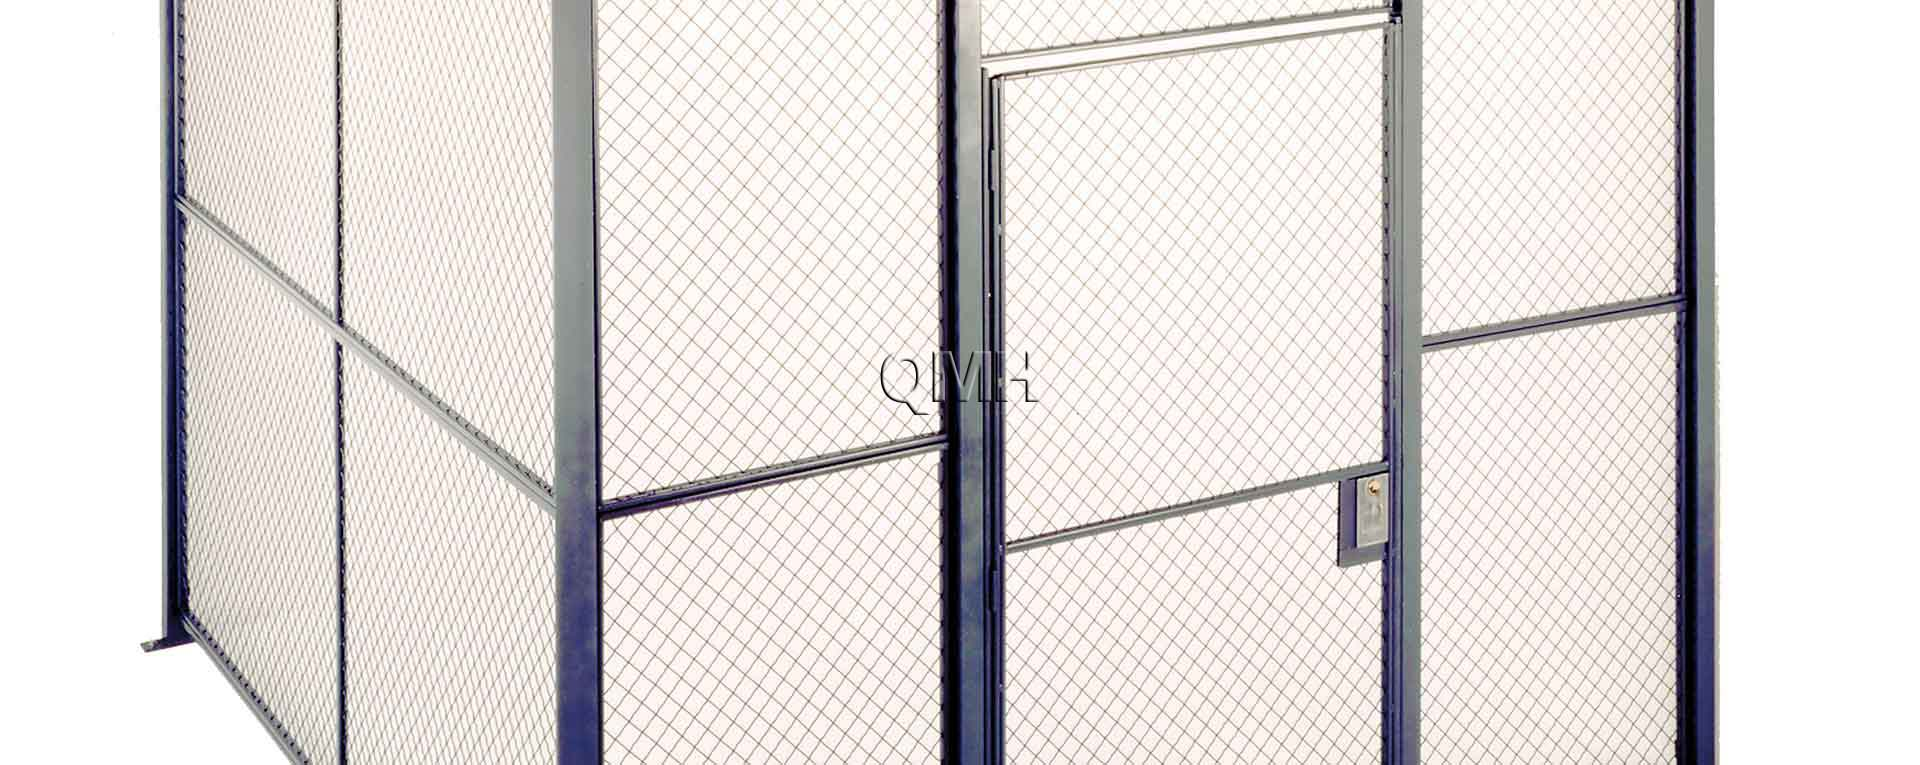 Wire Mesh Partition: Perfect for Data Security | QMH, Inc.